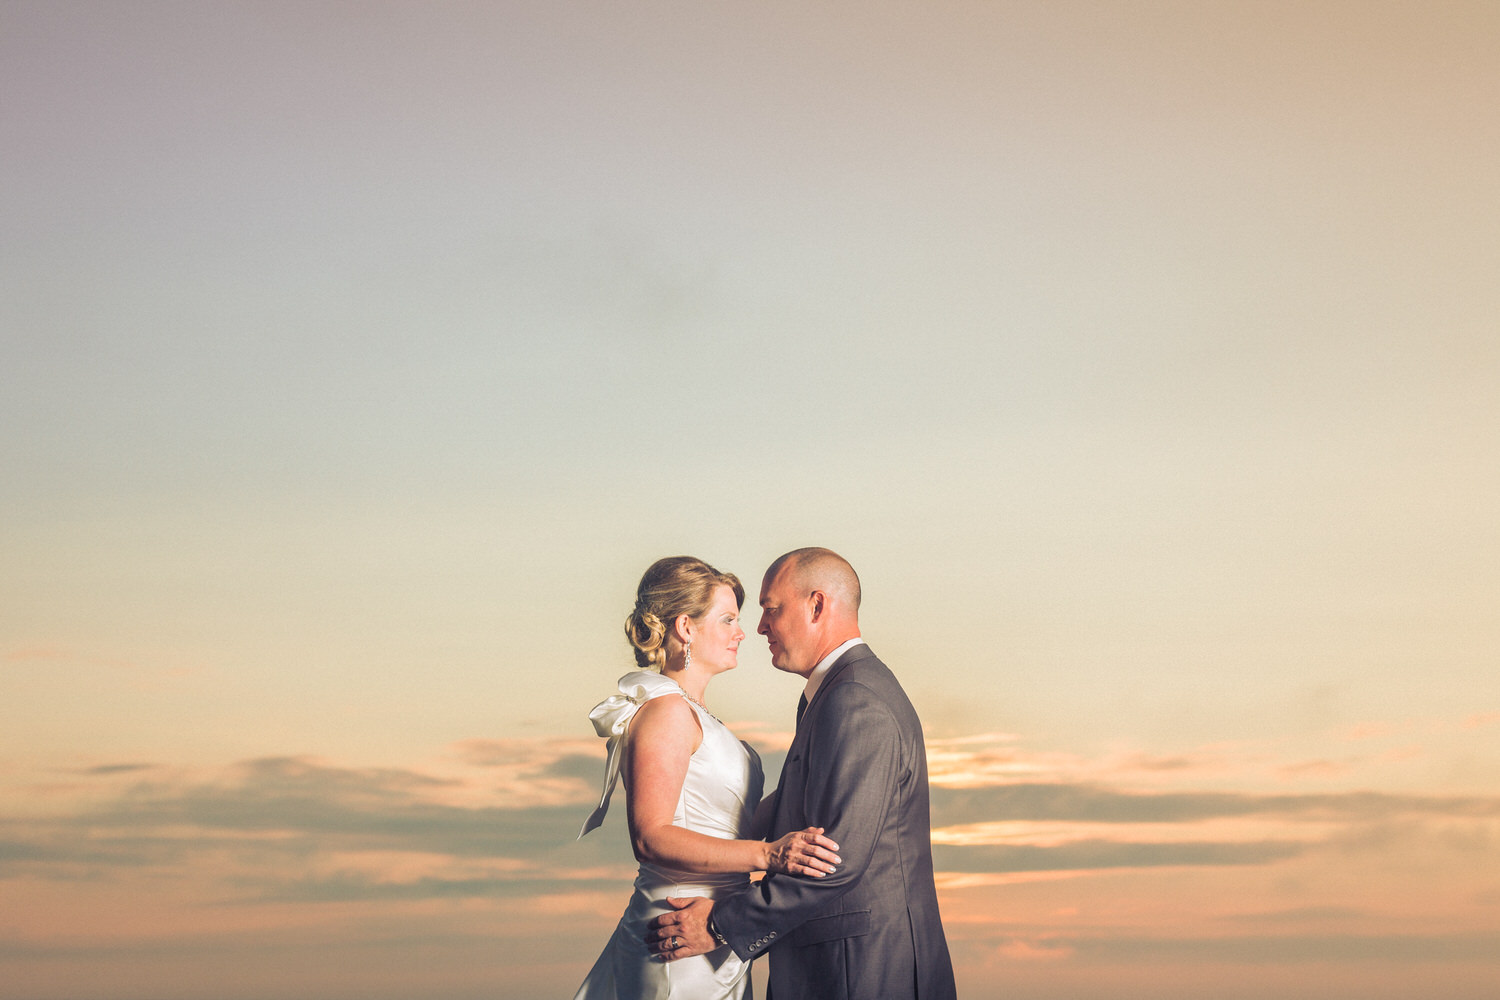 surprise-wedding-sunset-1-2.jpg